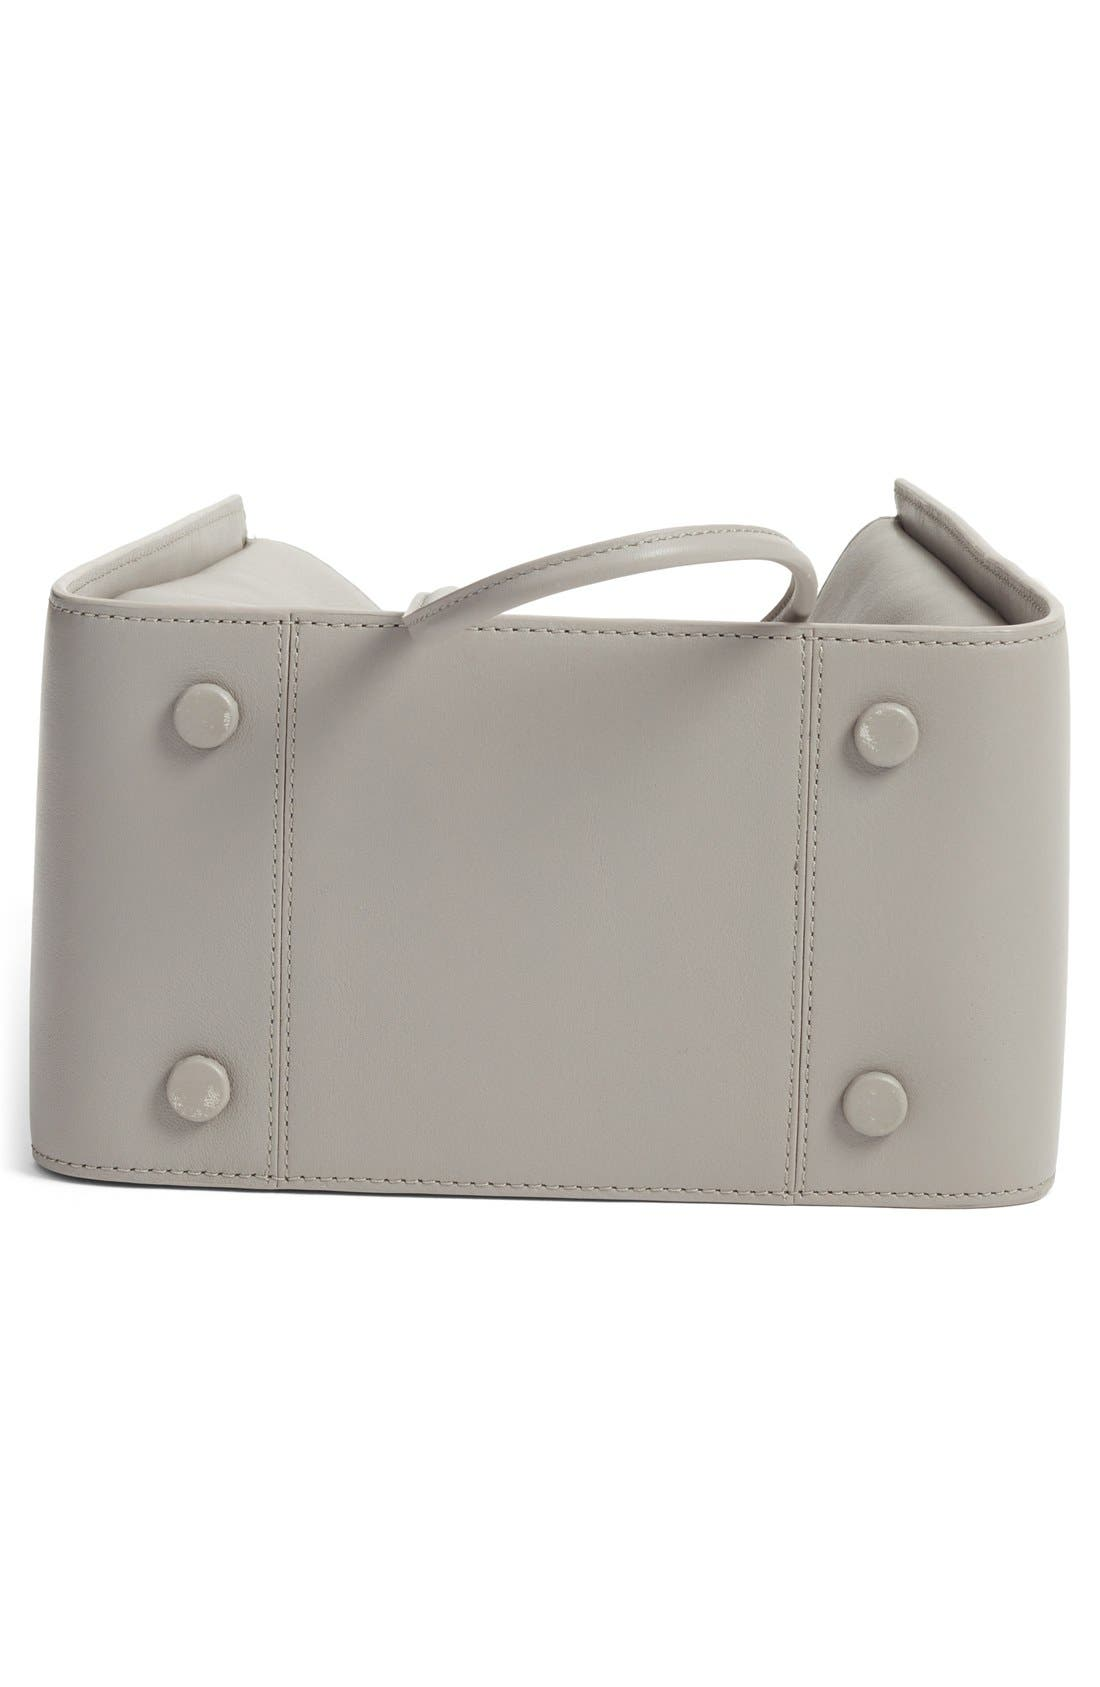 Small Soleil Leather Bucket Bag,                             Alternate thumbnail 5, color,                             Cement